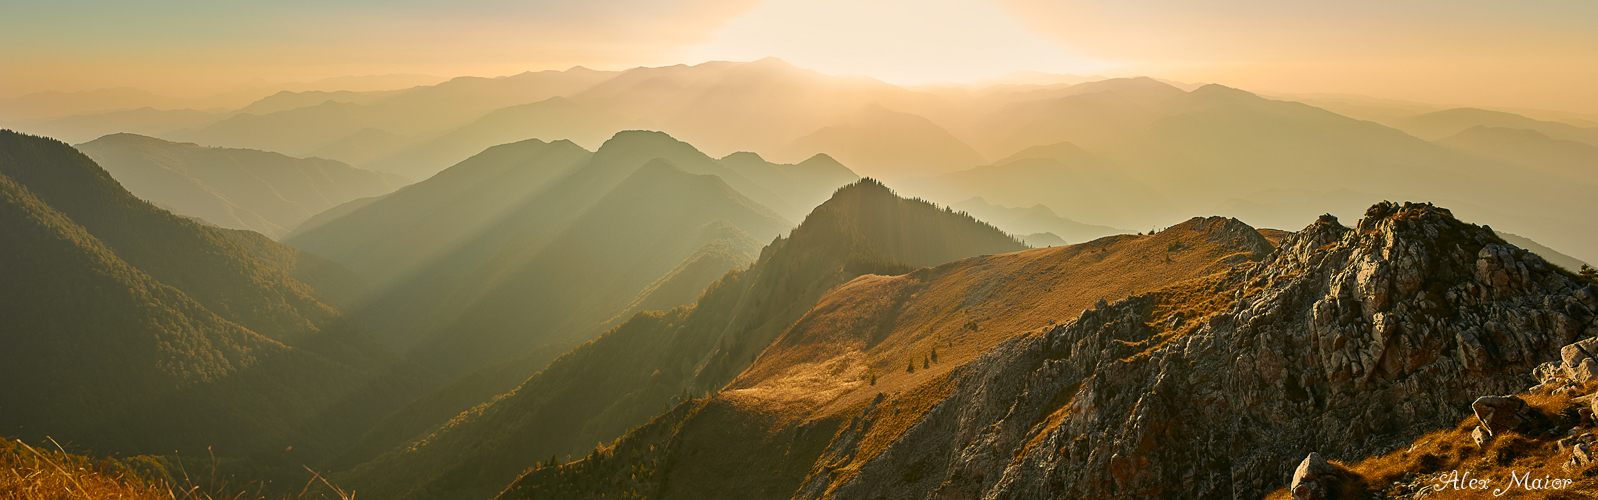 Sunset over the Carpathian mountains